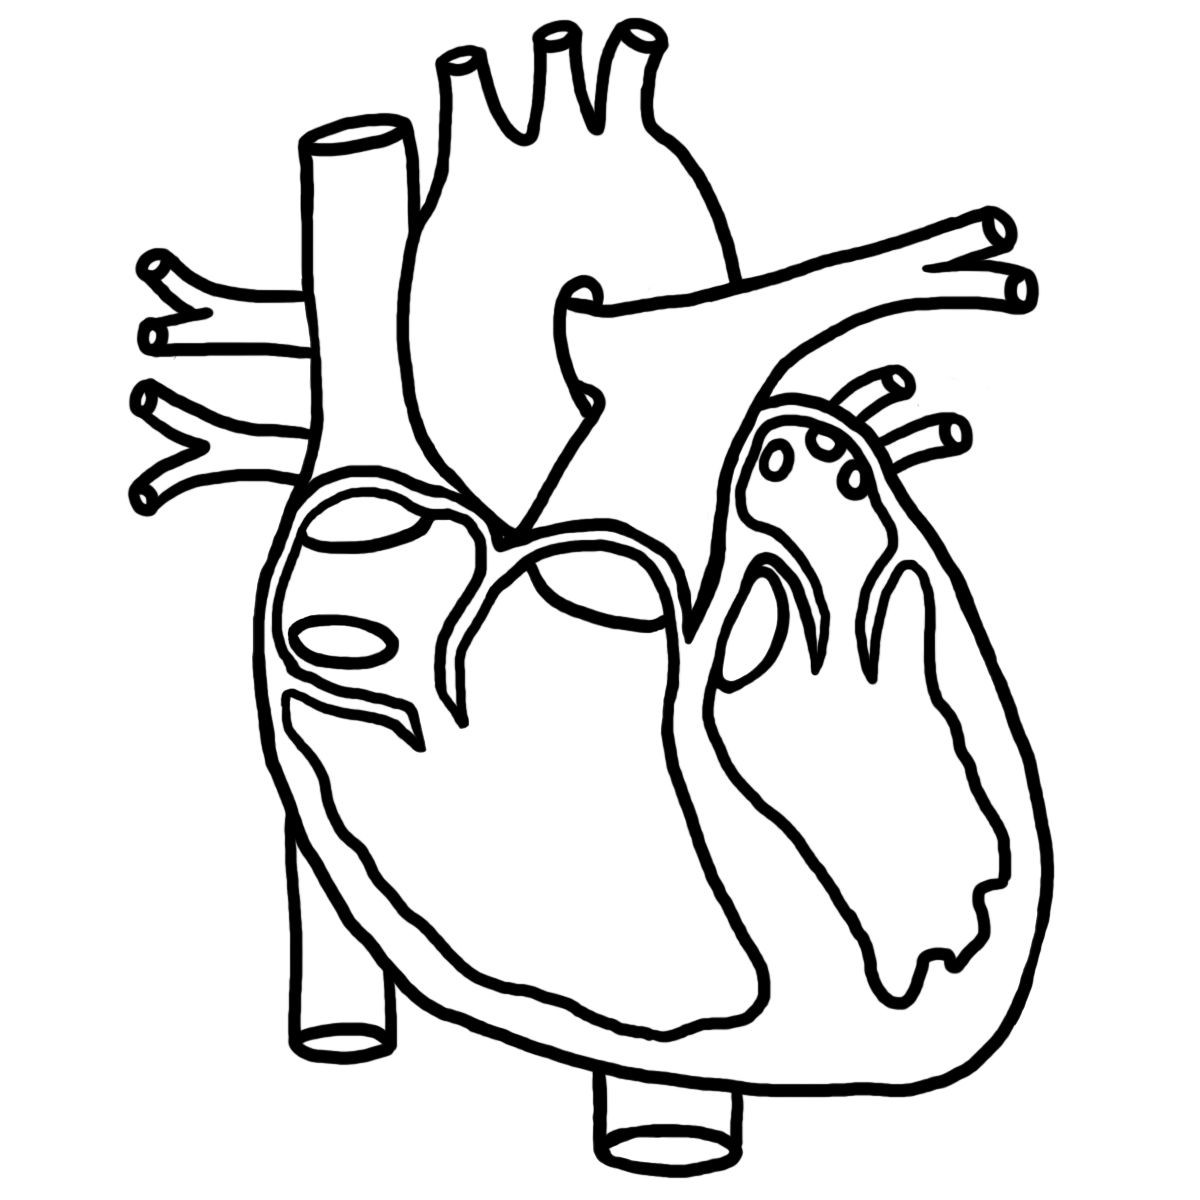 Printable Heart Diagram Human Anatomy Colouring Pages